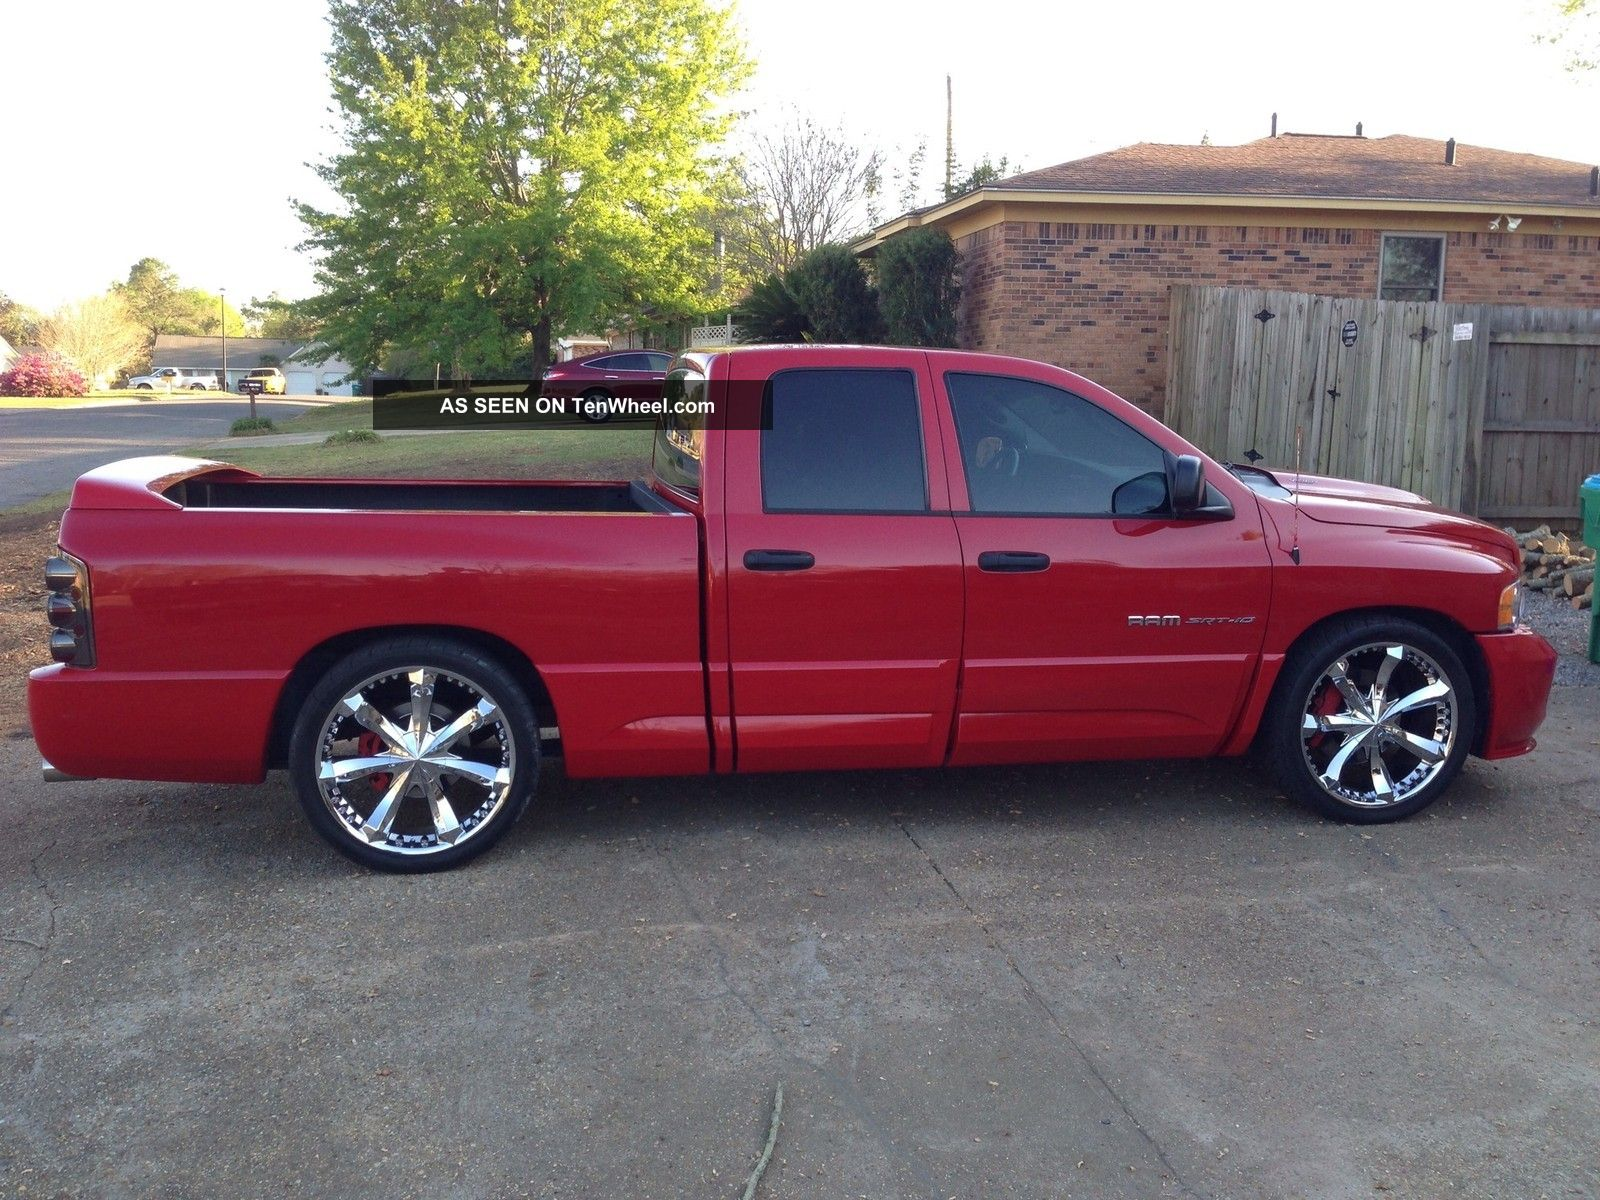 2005 dodge ram 1500 srt 10 quad cab pickup 4 door 8 3l. Black Bedroom Furniture Sets. Home Design Ideas